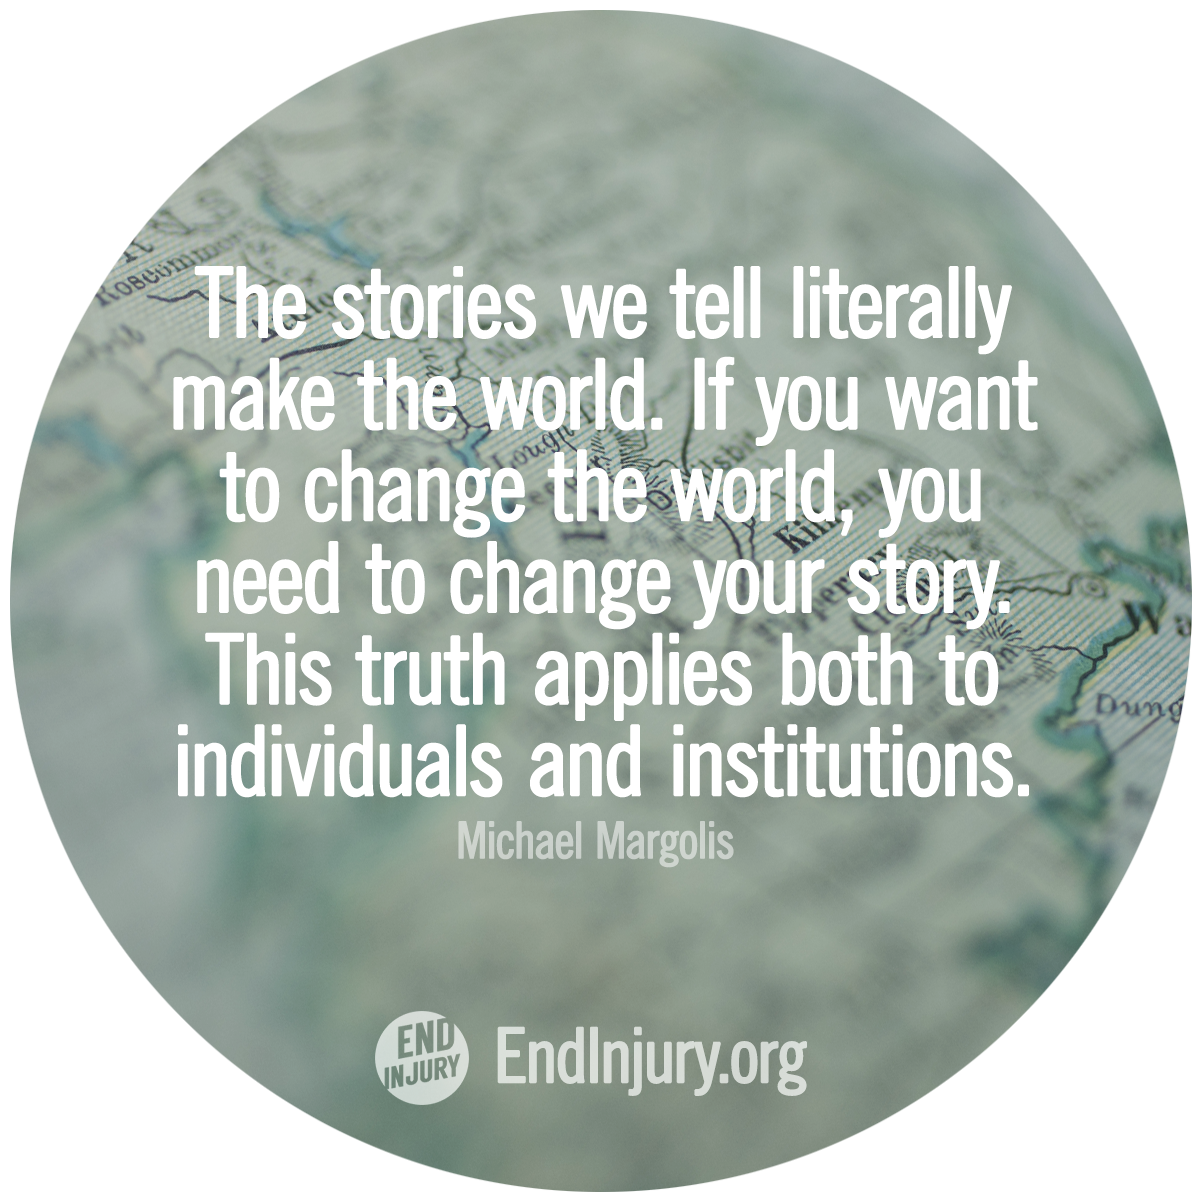 change-your-story-margolis-quote-photo.png